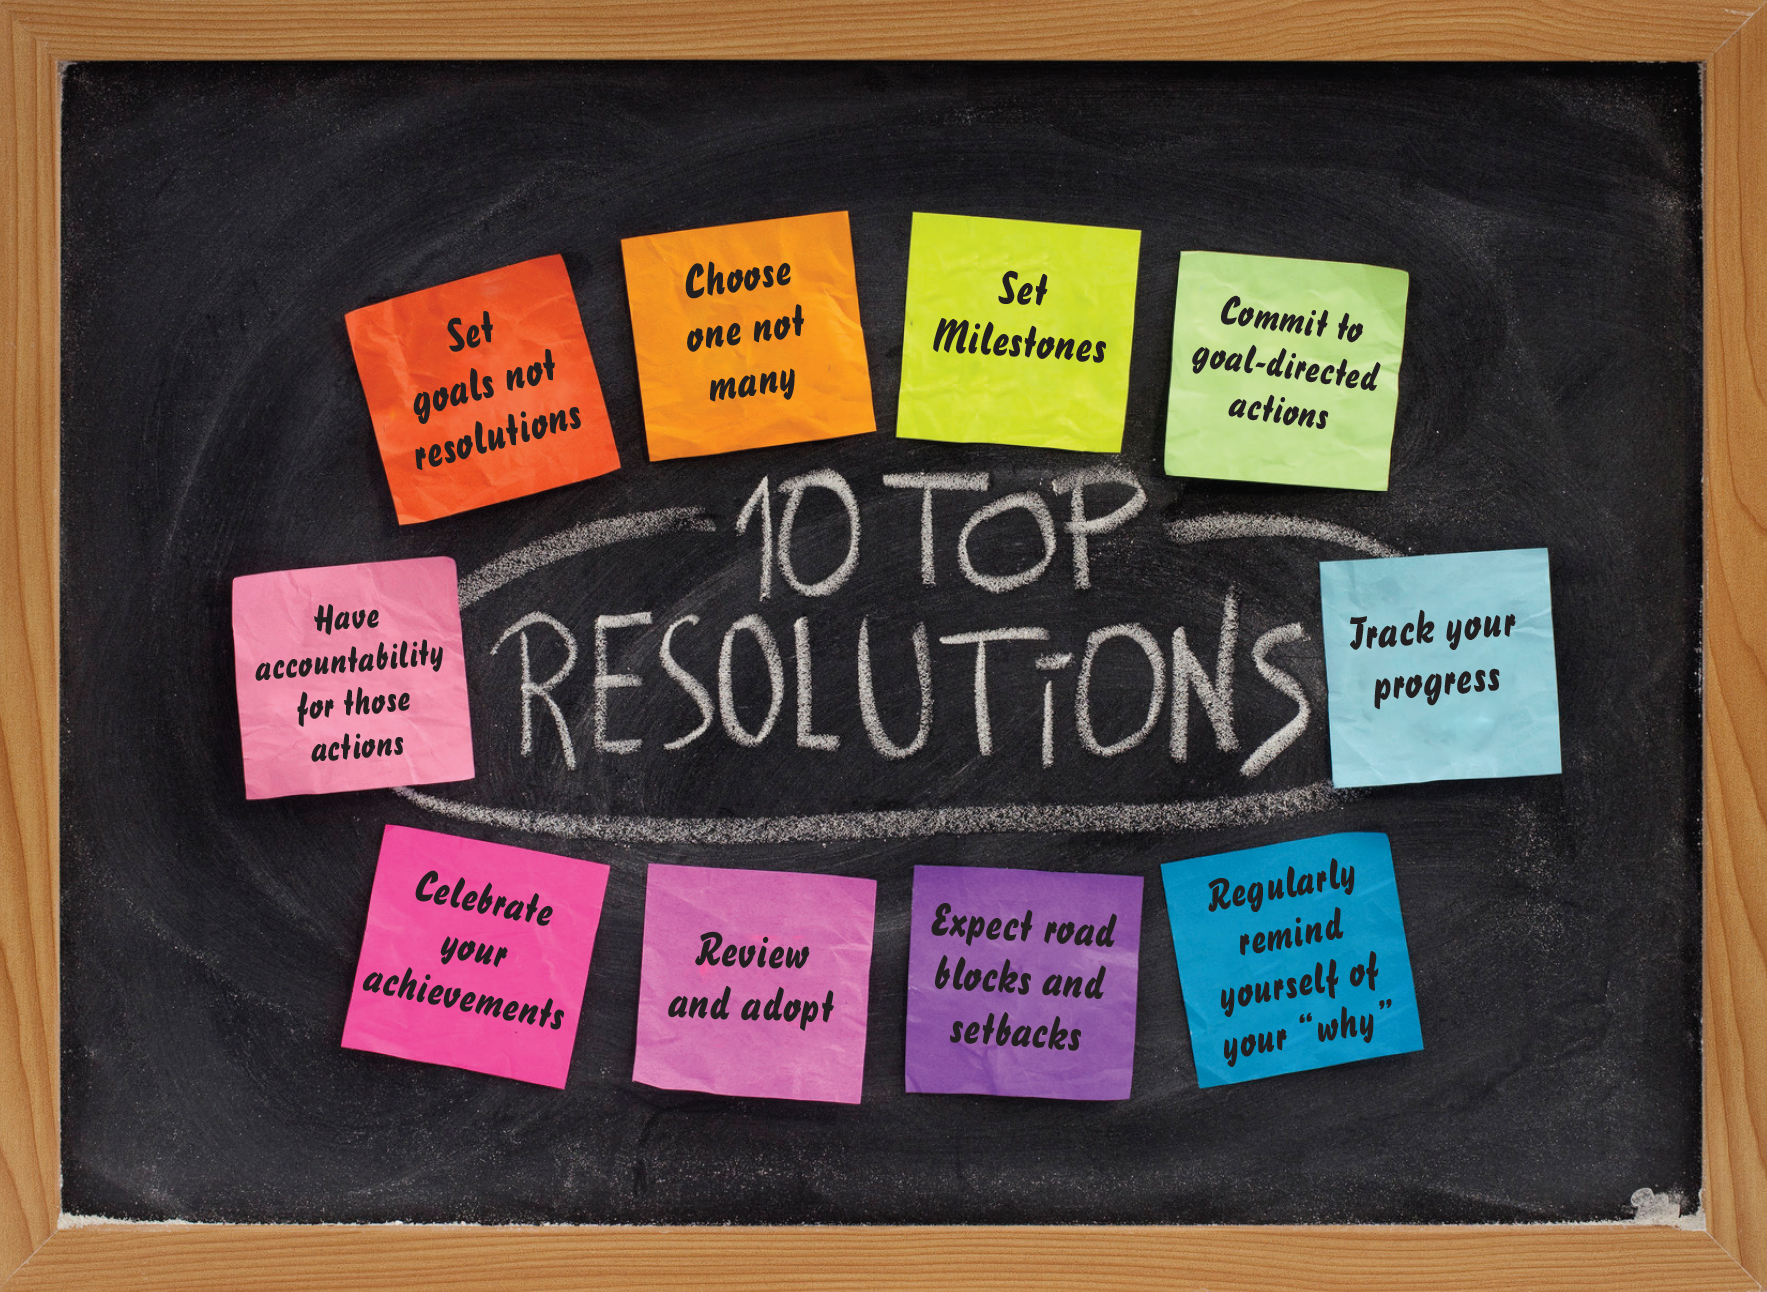 Marvelous ... New Yearu0027s Resolution A Success. Advice · Life Images